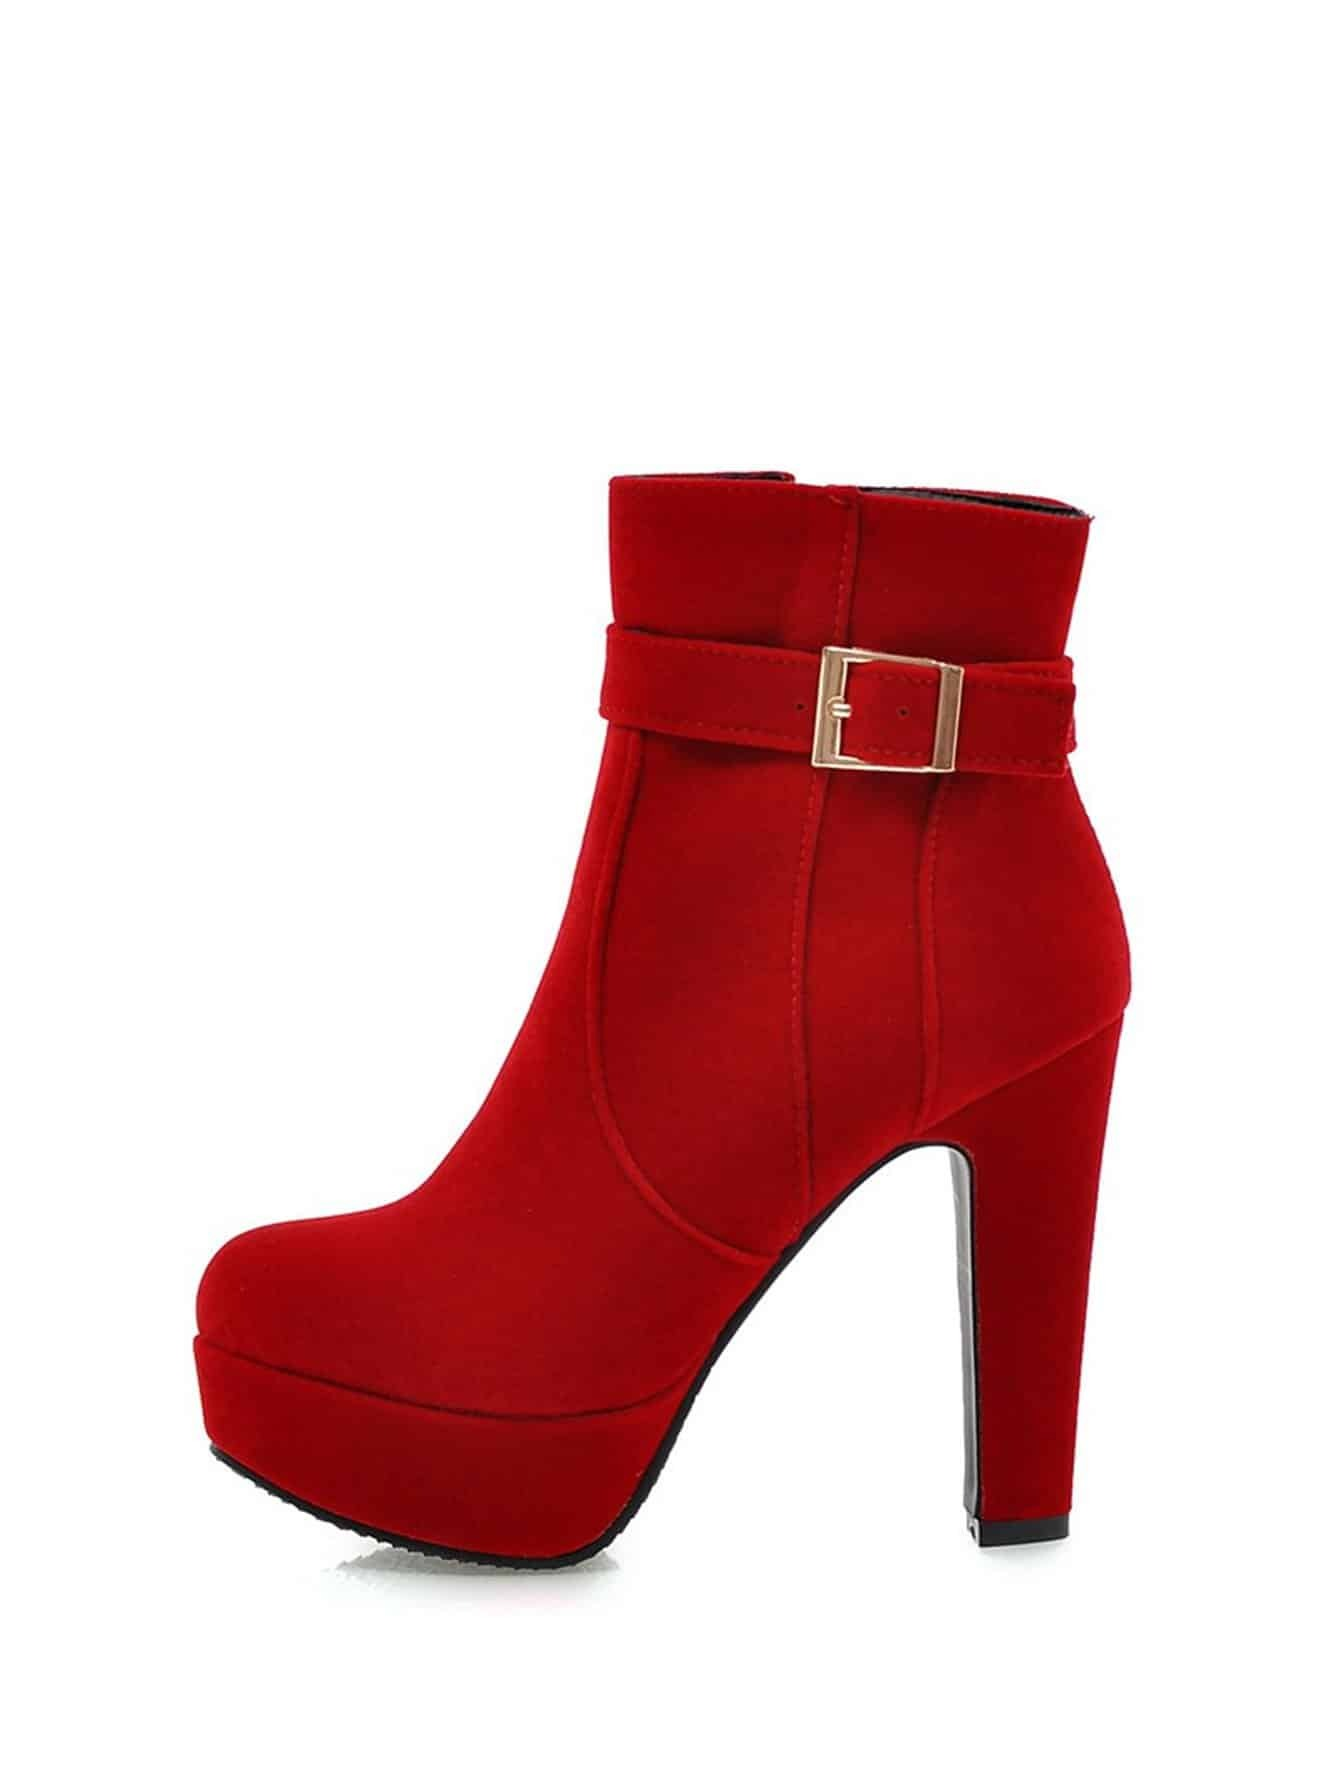 Platform High Heeled Ankle Boots fedonas top quality winter ankle boots women platform high heels genuine leather shoes woman warm plush snow motorcycle boots